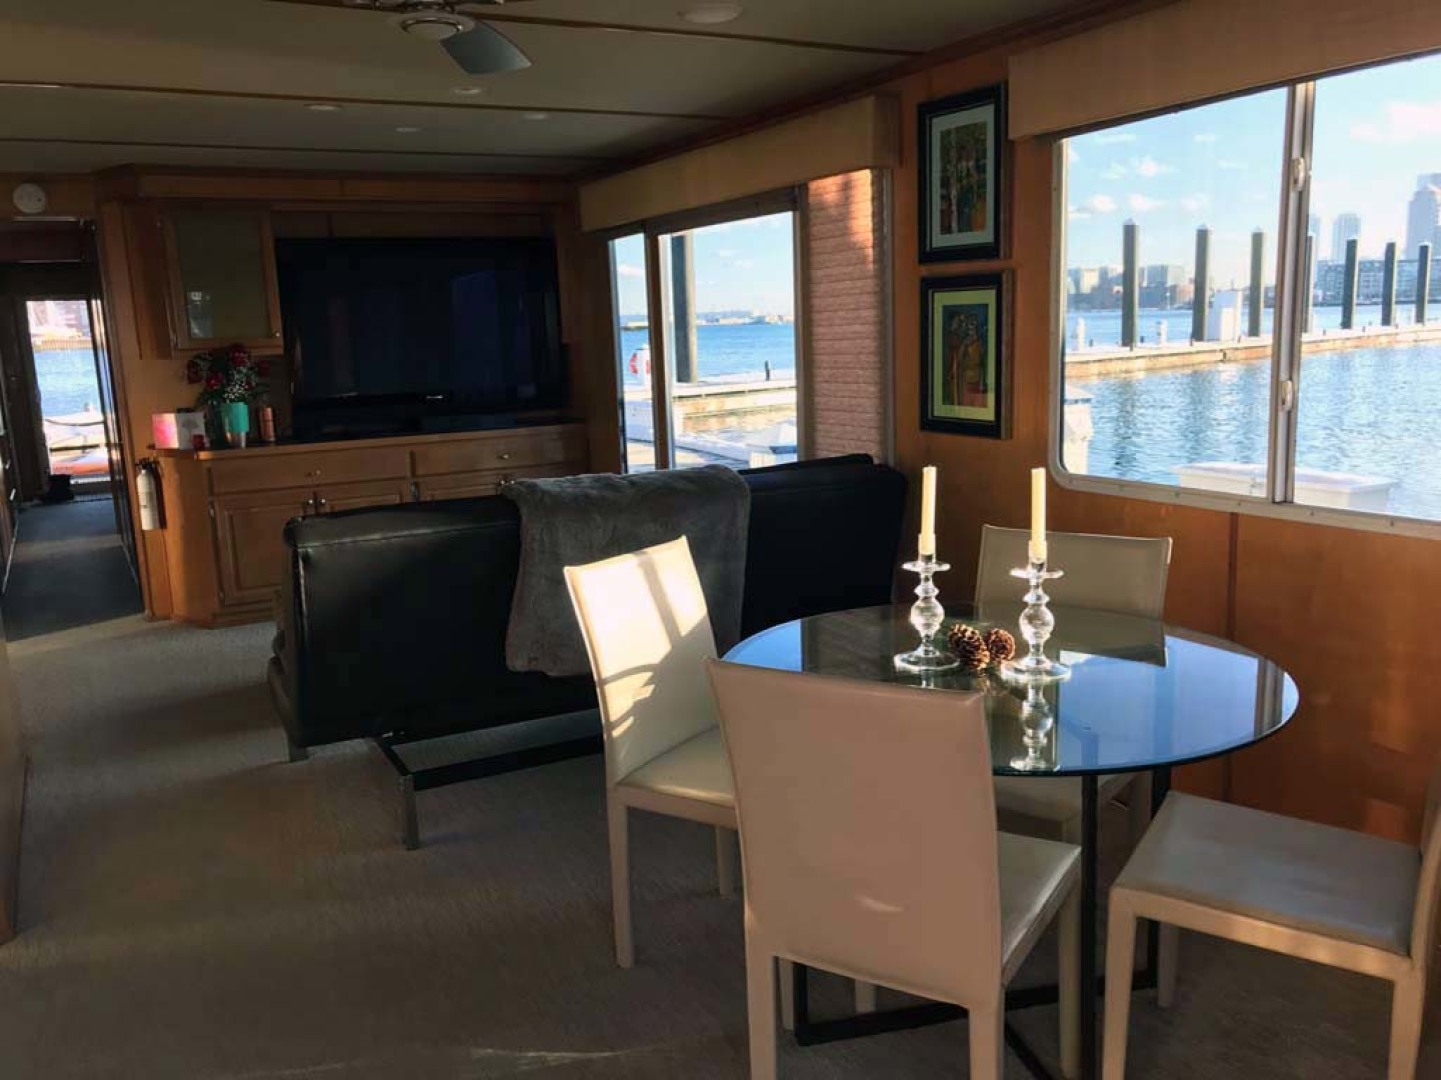 Horizon-66 Houseboat 2007-Carpe Diem Boston-Massachusetts-United States-Galley/Salon View Looking Aft-1120075 | Thumbnail